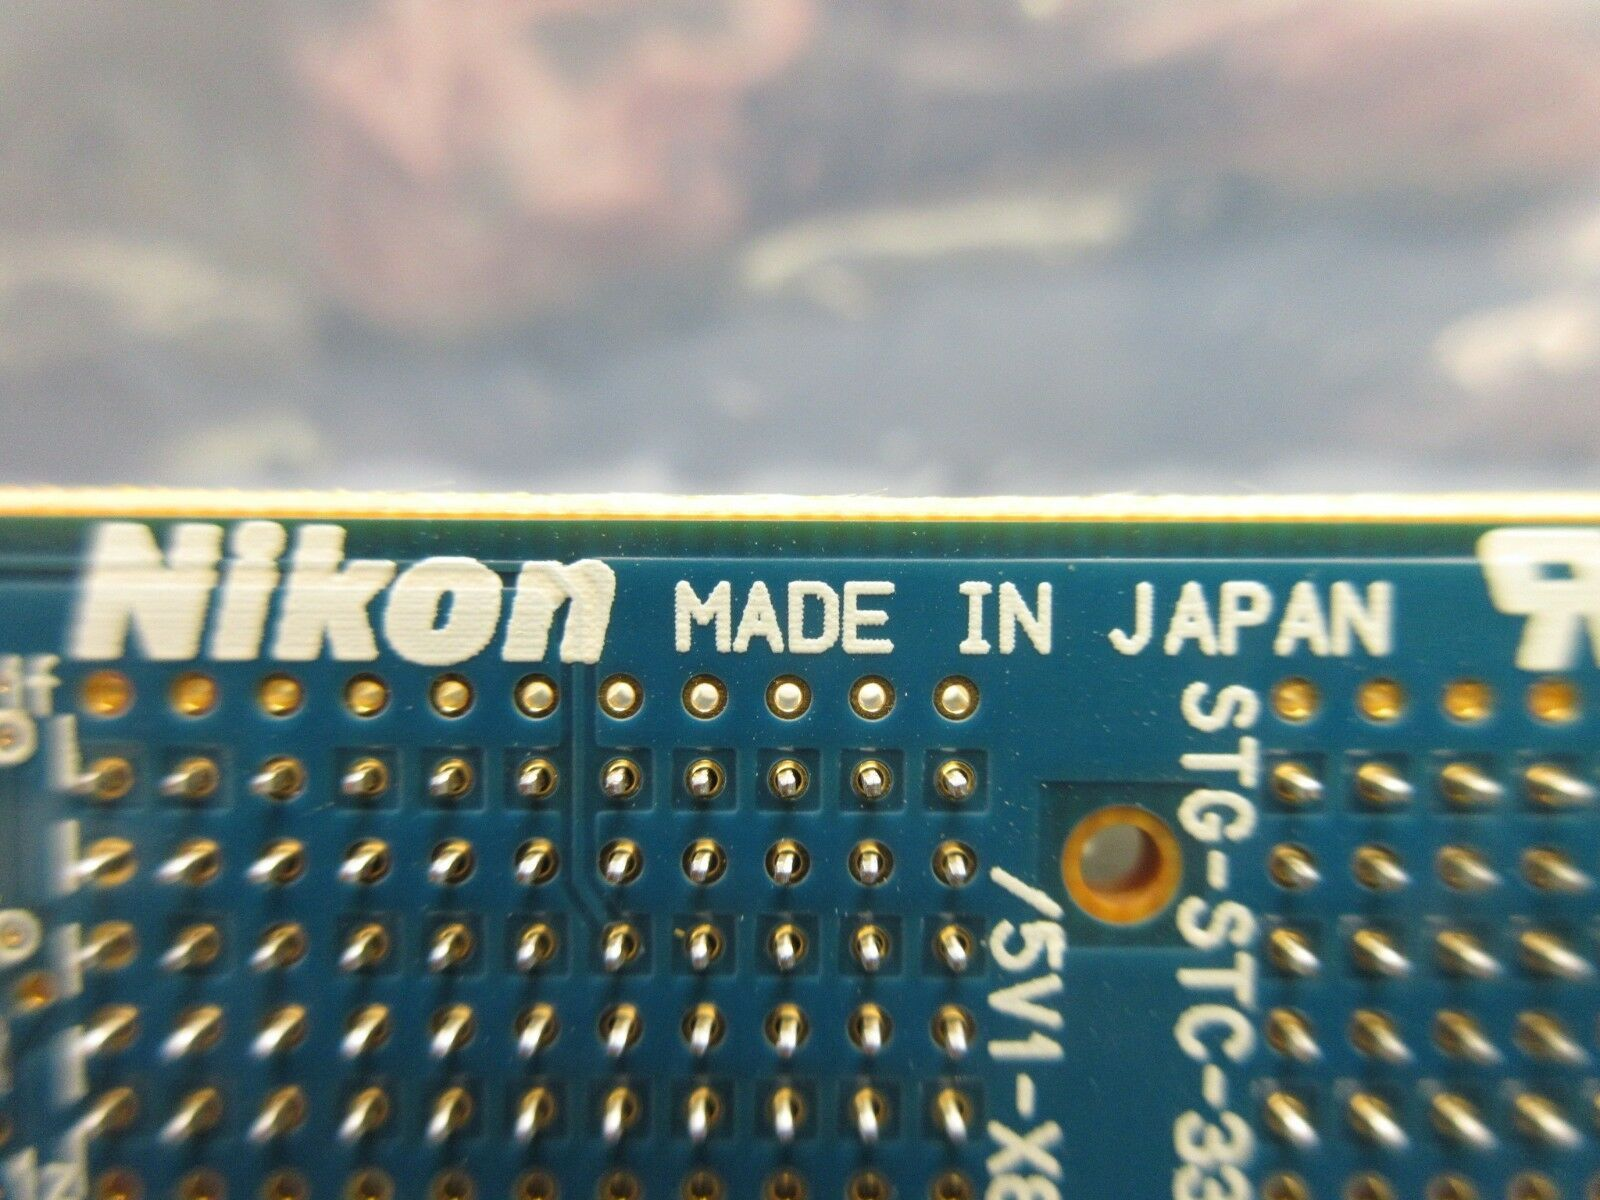 Nikon STG-STC-33/5V1-X8 Interface Board PCB NSR System Used Working